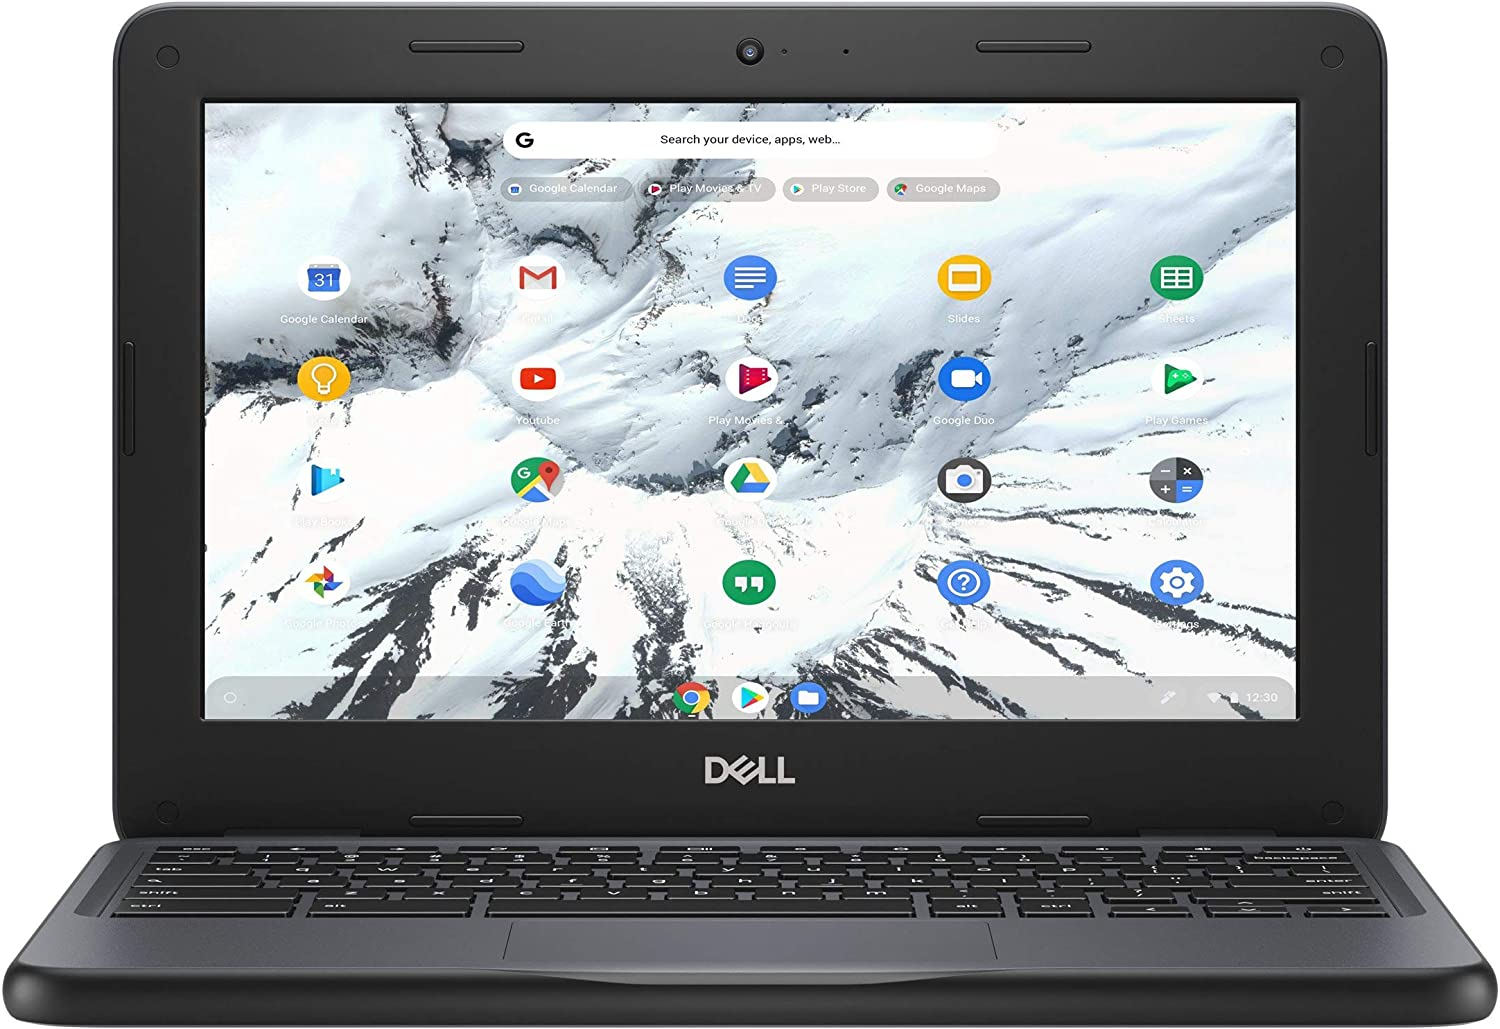 Dell Chromebook 11 3000 3100 11.6